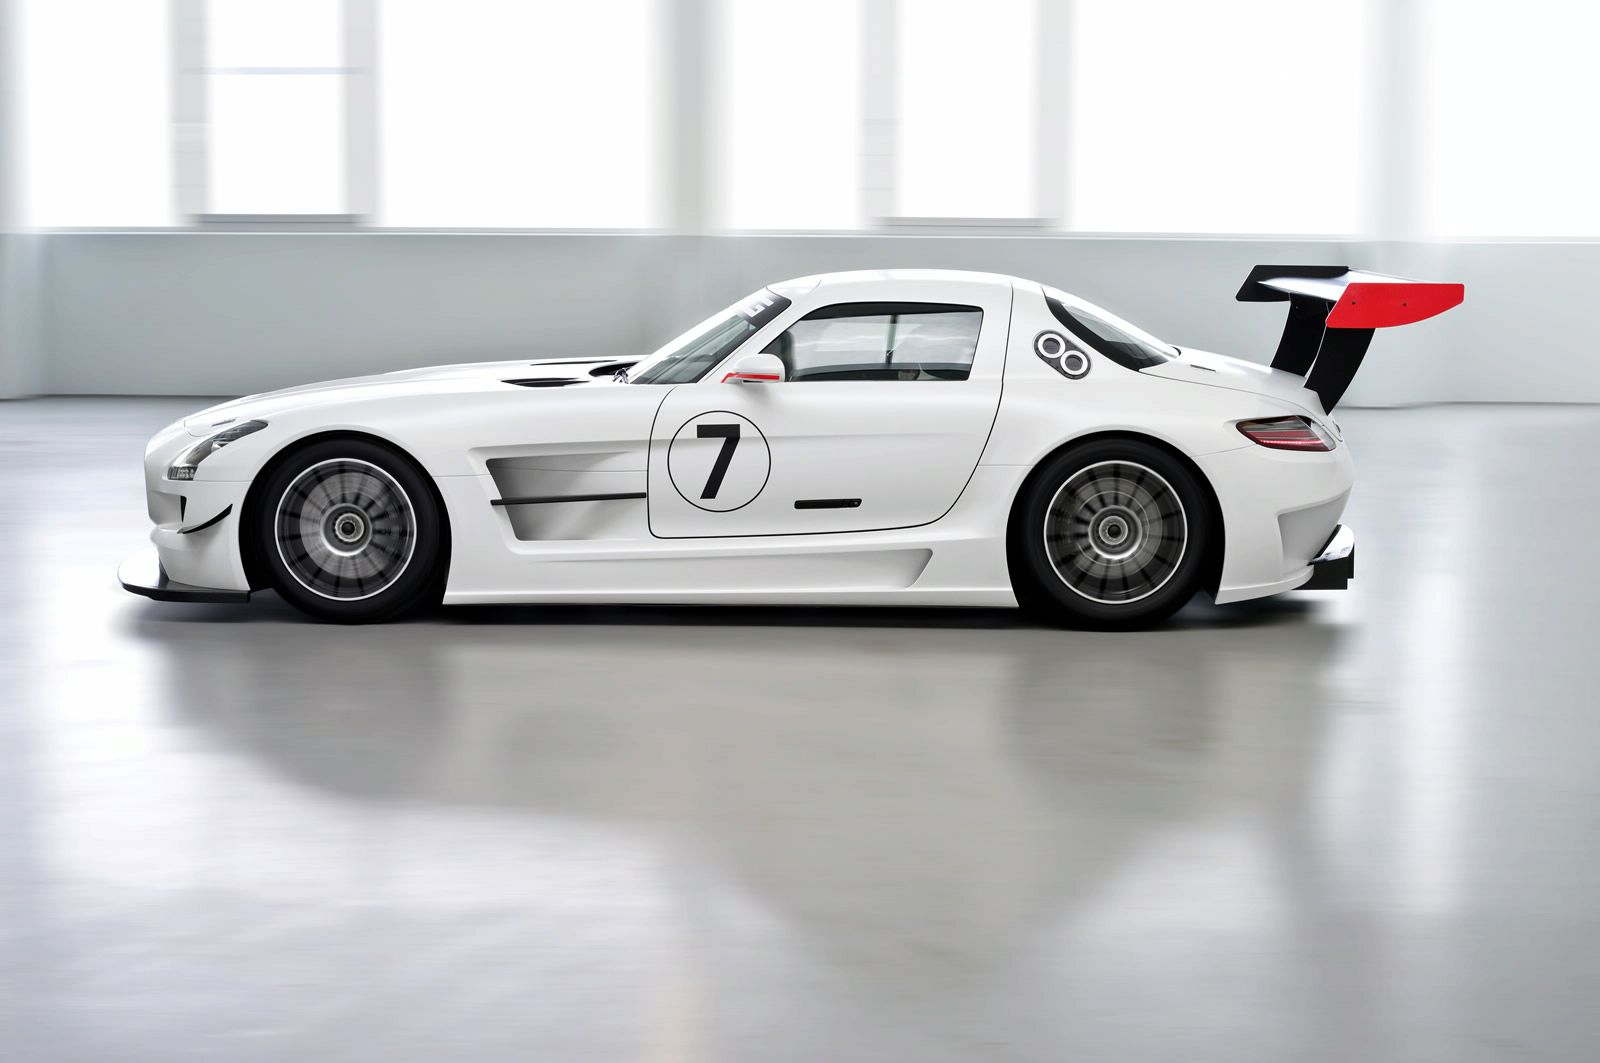 2018 Mercedes Benz SLS AMG GT3 photo - 5